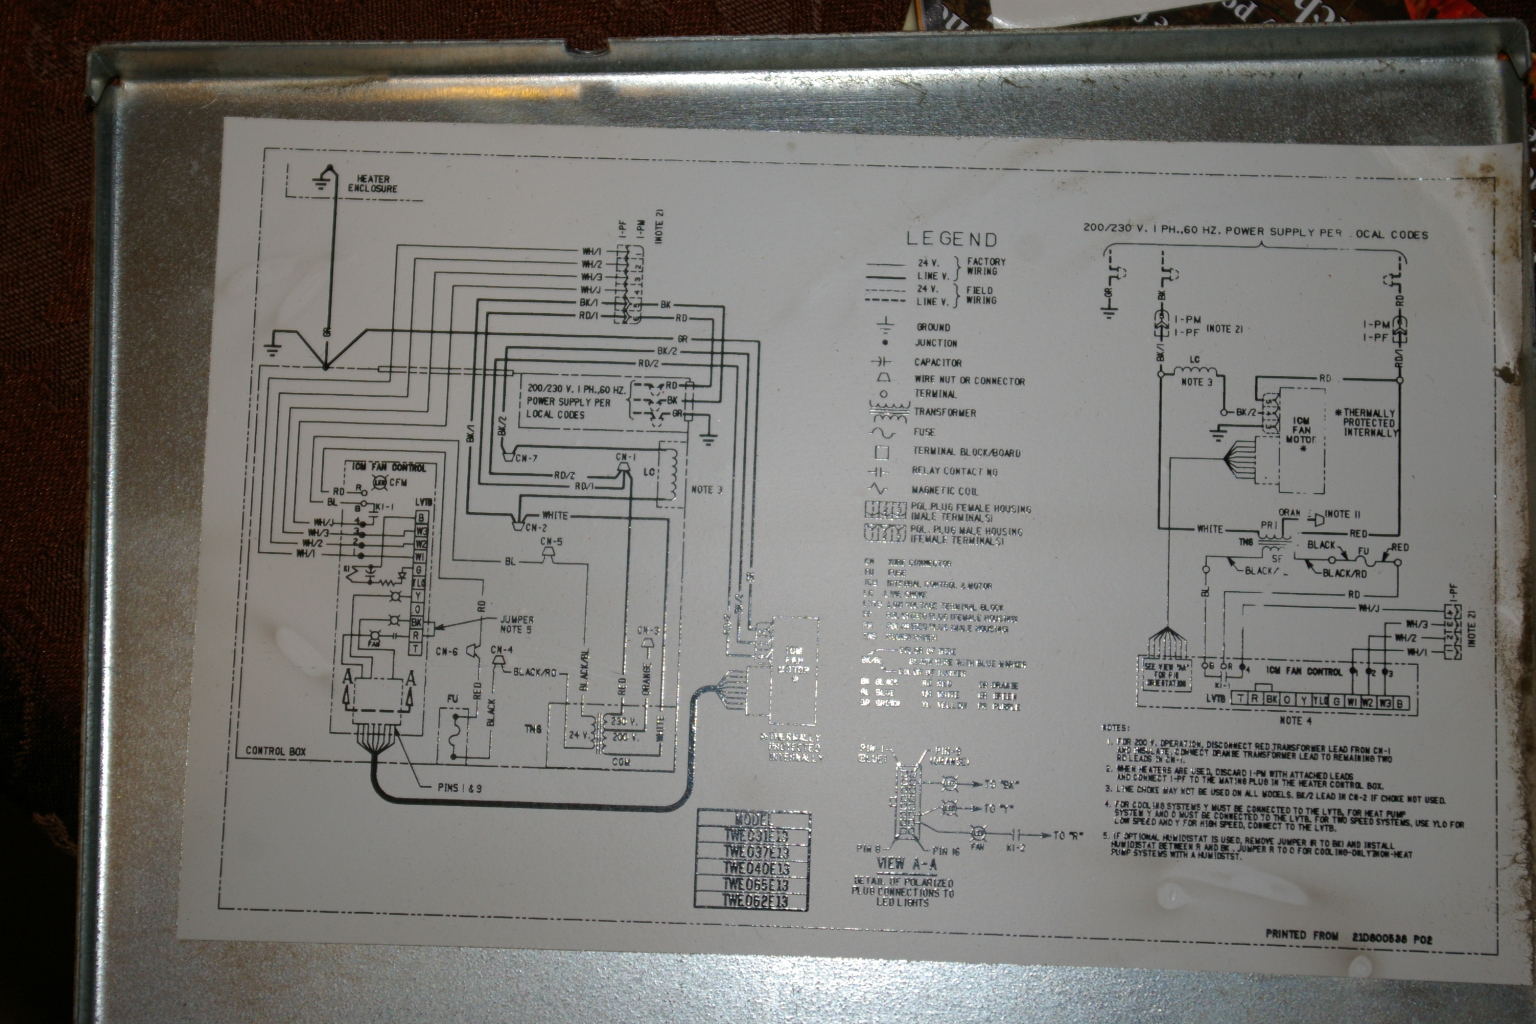 hight resolution of wiring diagram trane split system 6 24 kenmo lp de u2022trane rooftop ac wiring diagrams